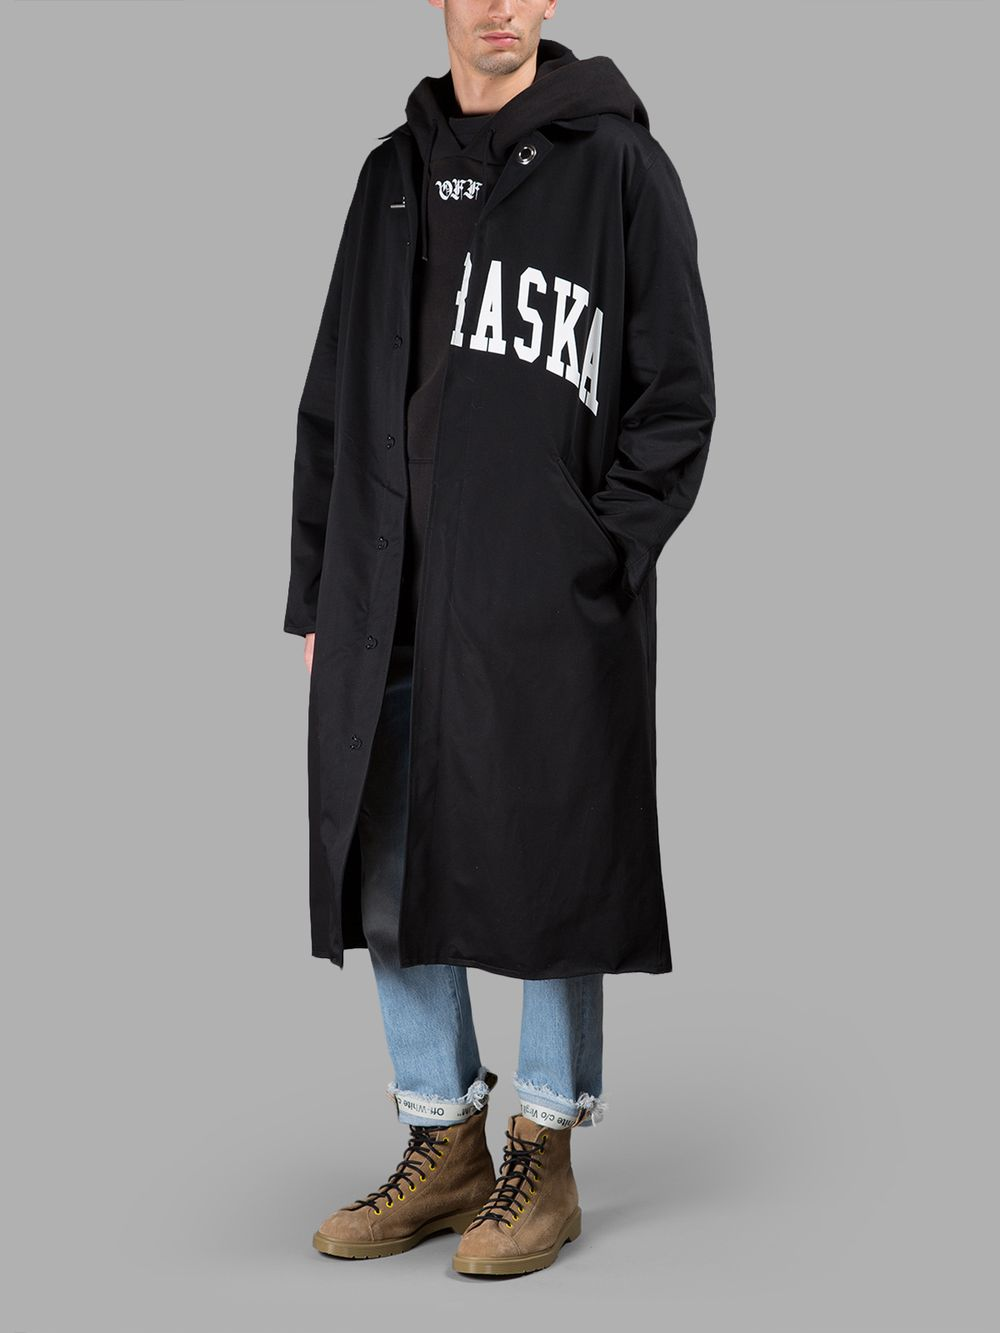 OFF-WHITE C/O VIRGIL ABLOH MEN'S BLACK NEBRASKA COAT